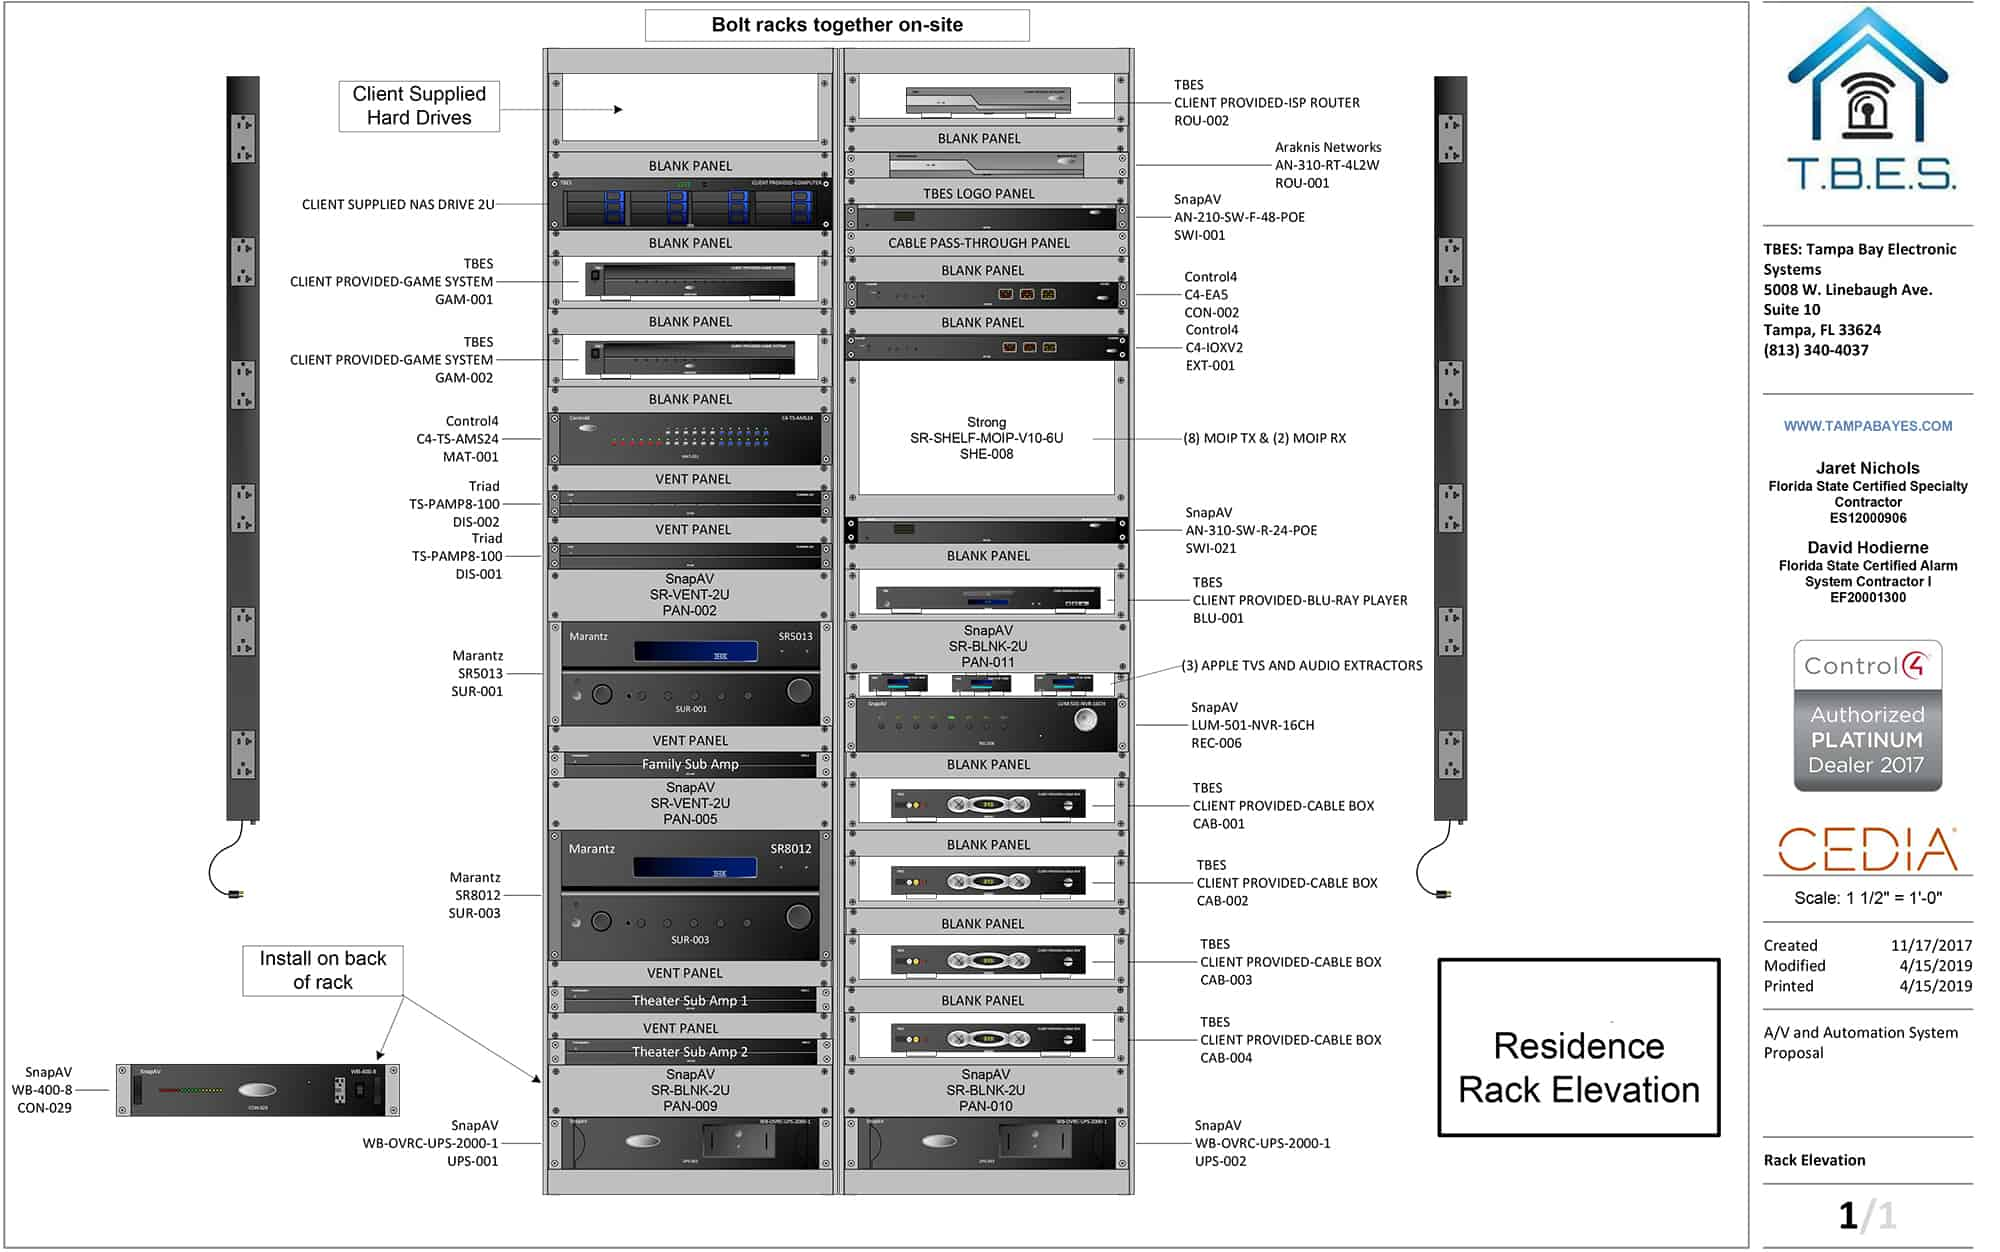 Visio Rack Elevation